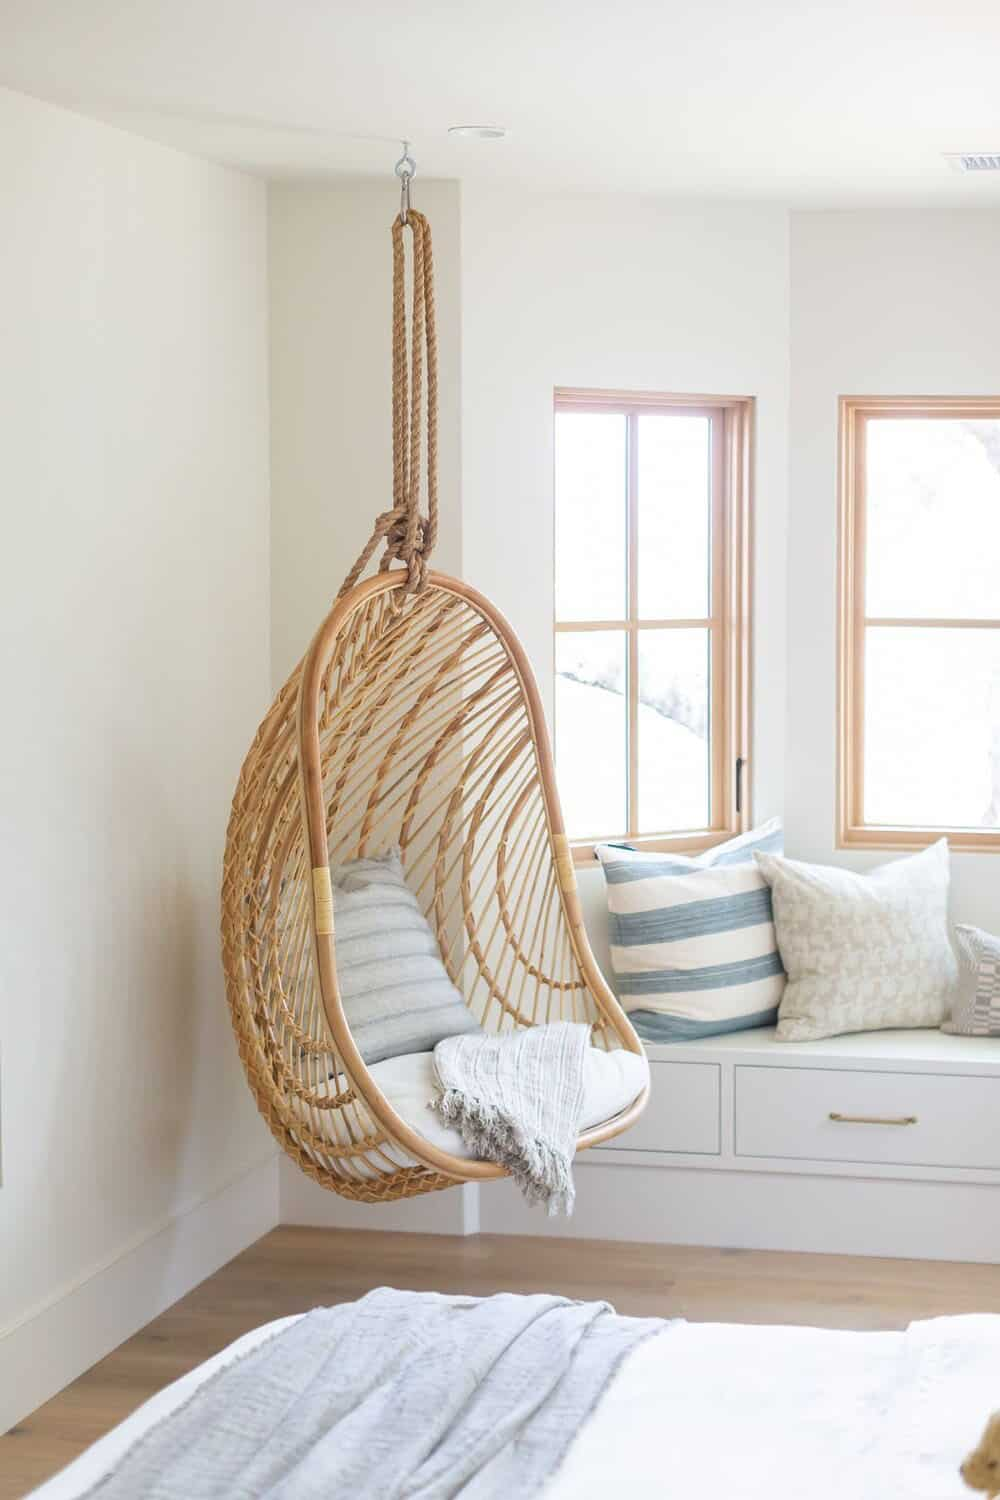 transitional-style-bedroom-hanging-chair